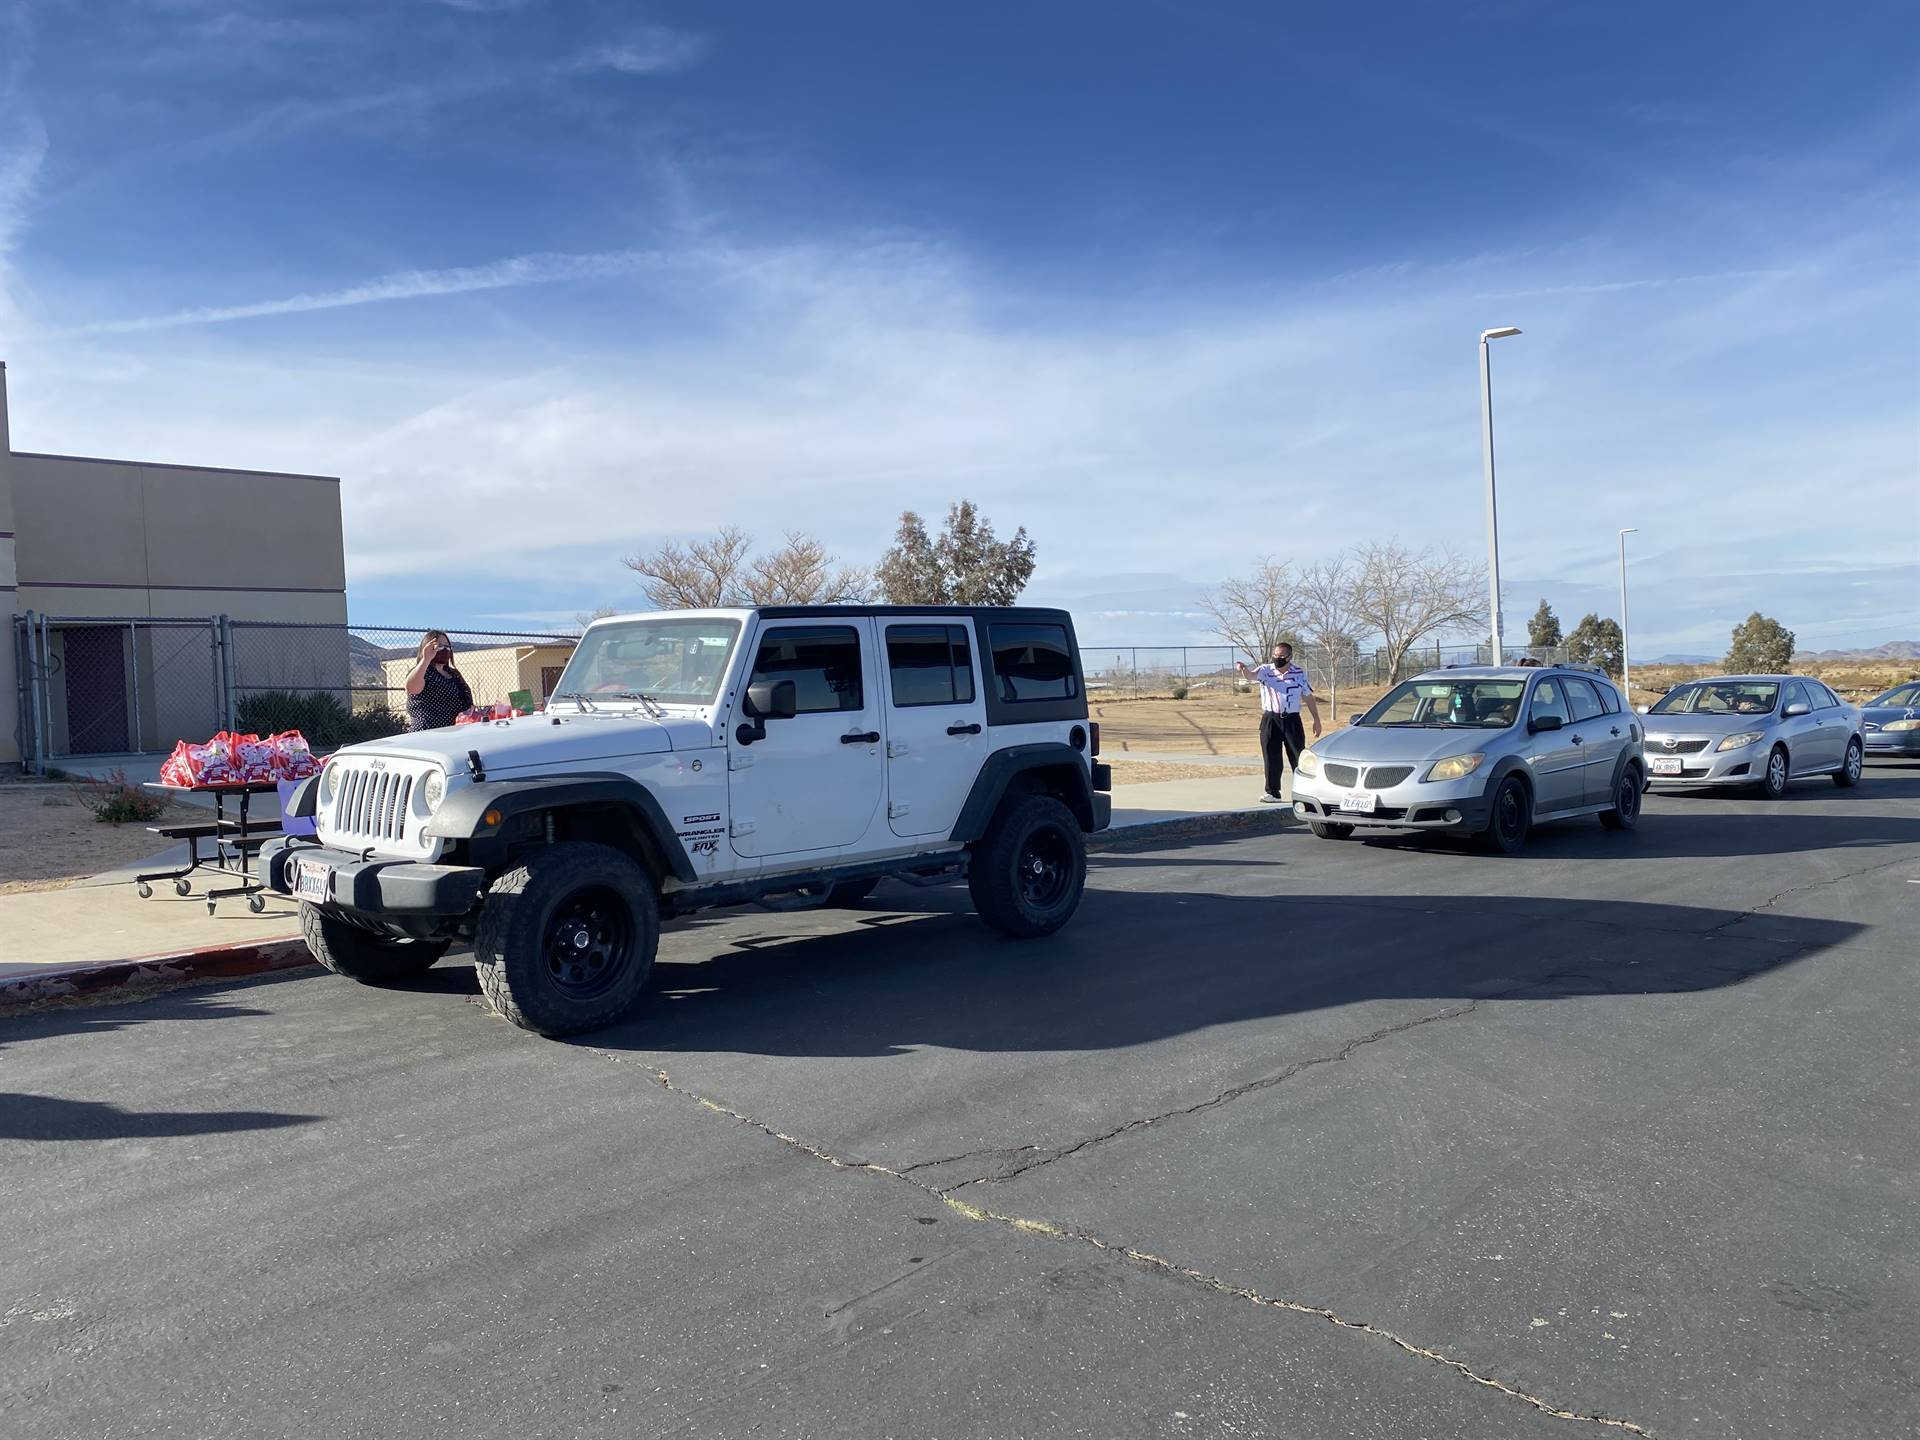 Cars line up for Valentine's Day pickup